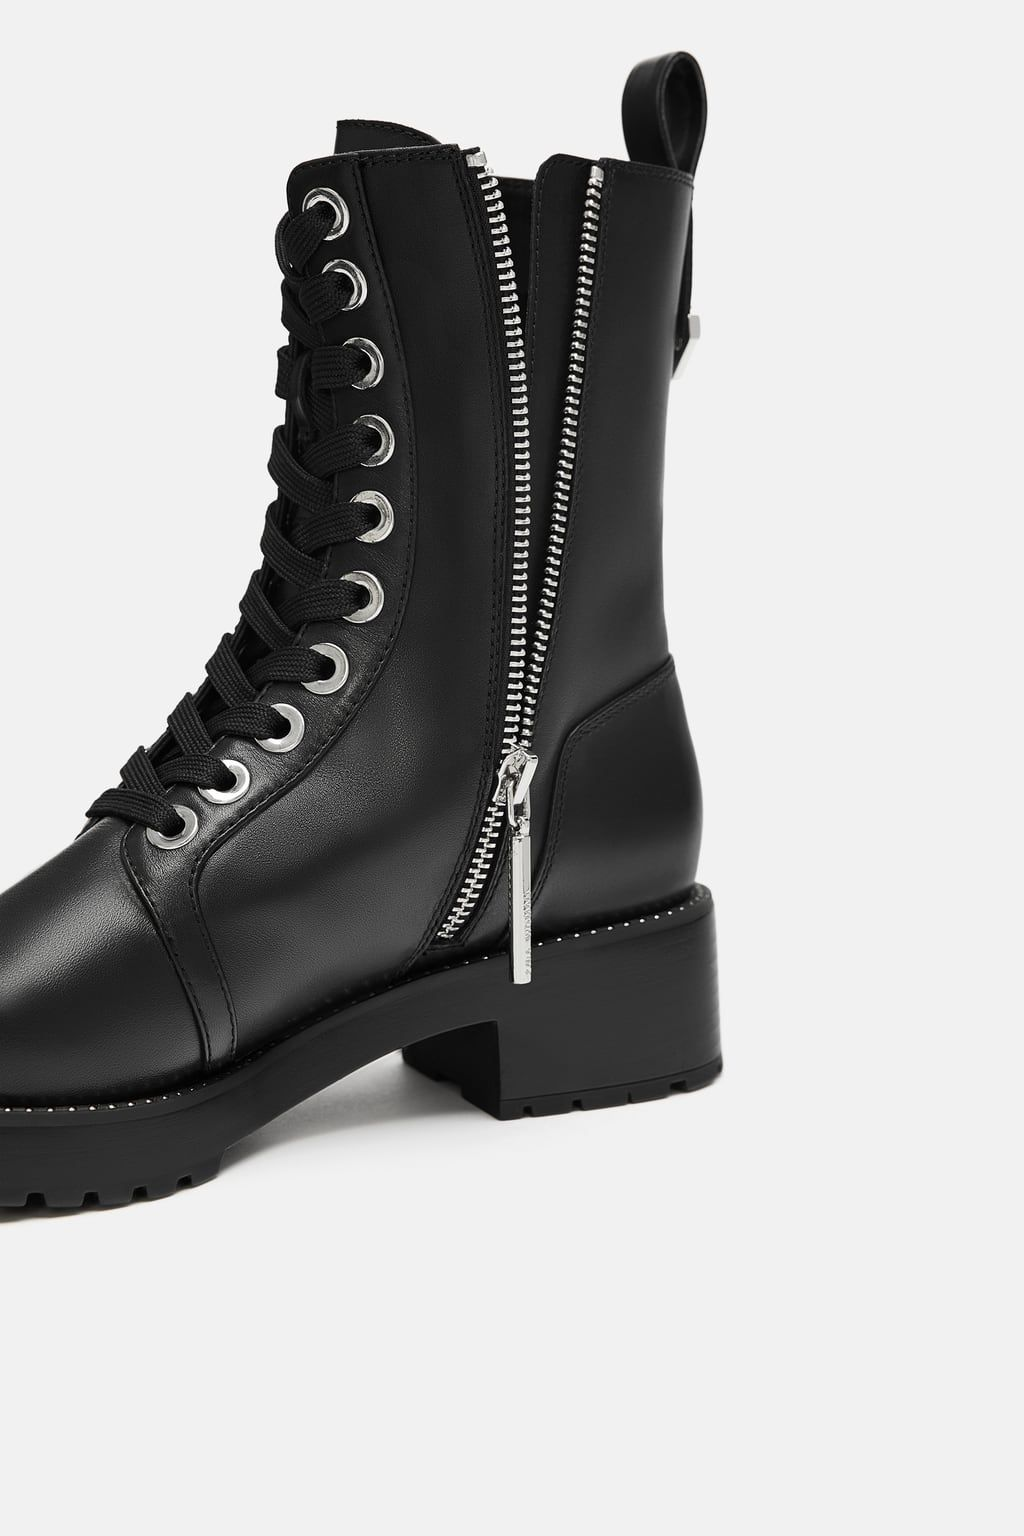 df5d6284d54 Micro studded leather biker ankle boots | My Style Shoes | Studded ...